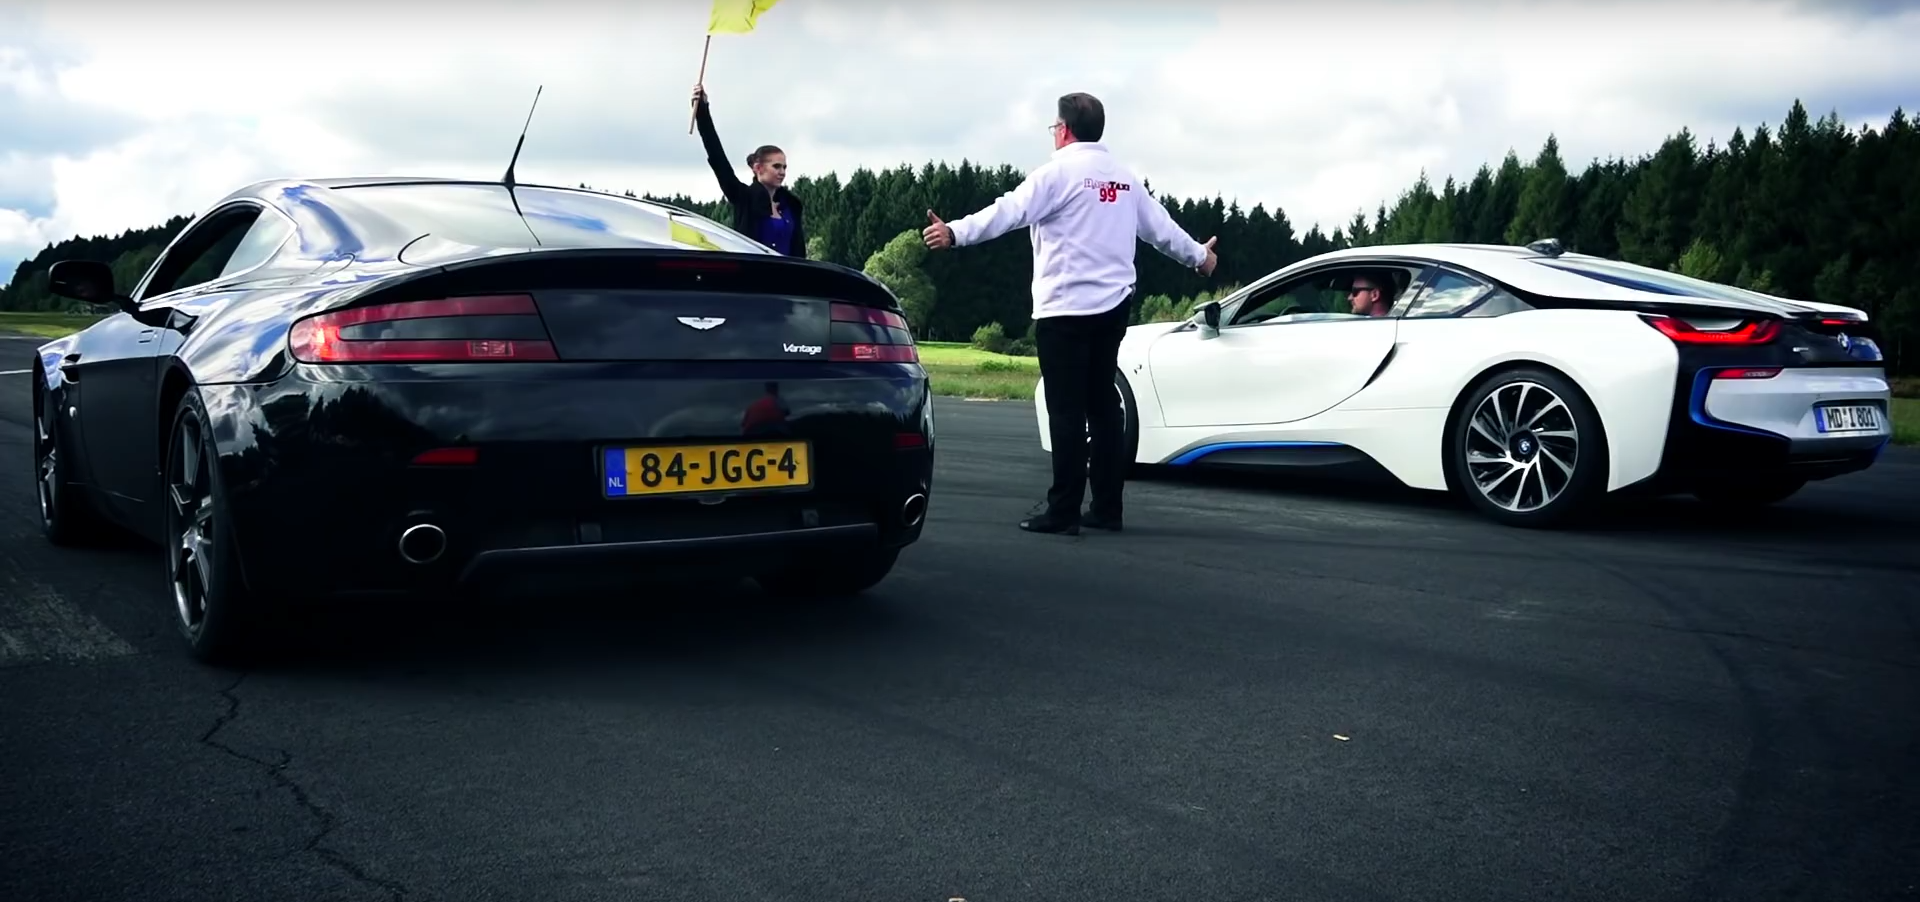 Bmw I8 Drag Races Aston Martin V8 Vantage And Claims Another Trophy